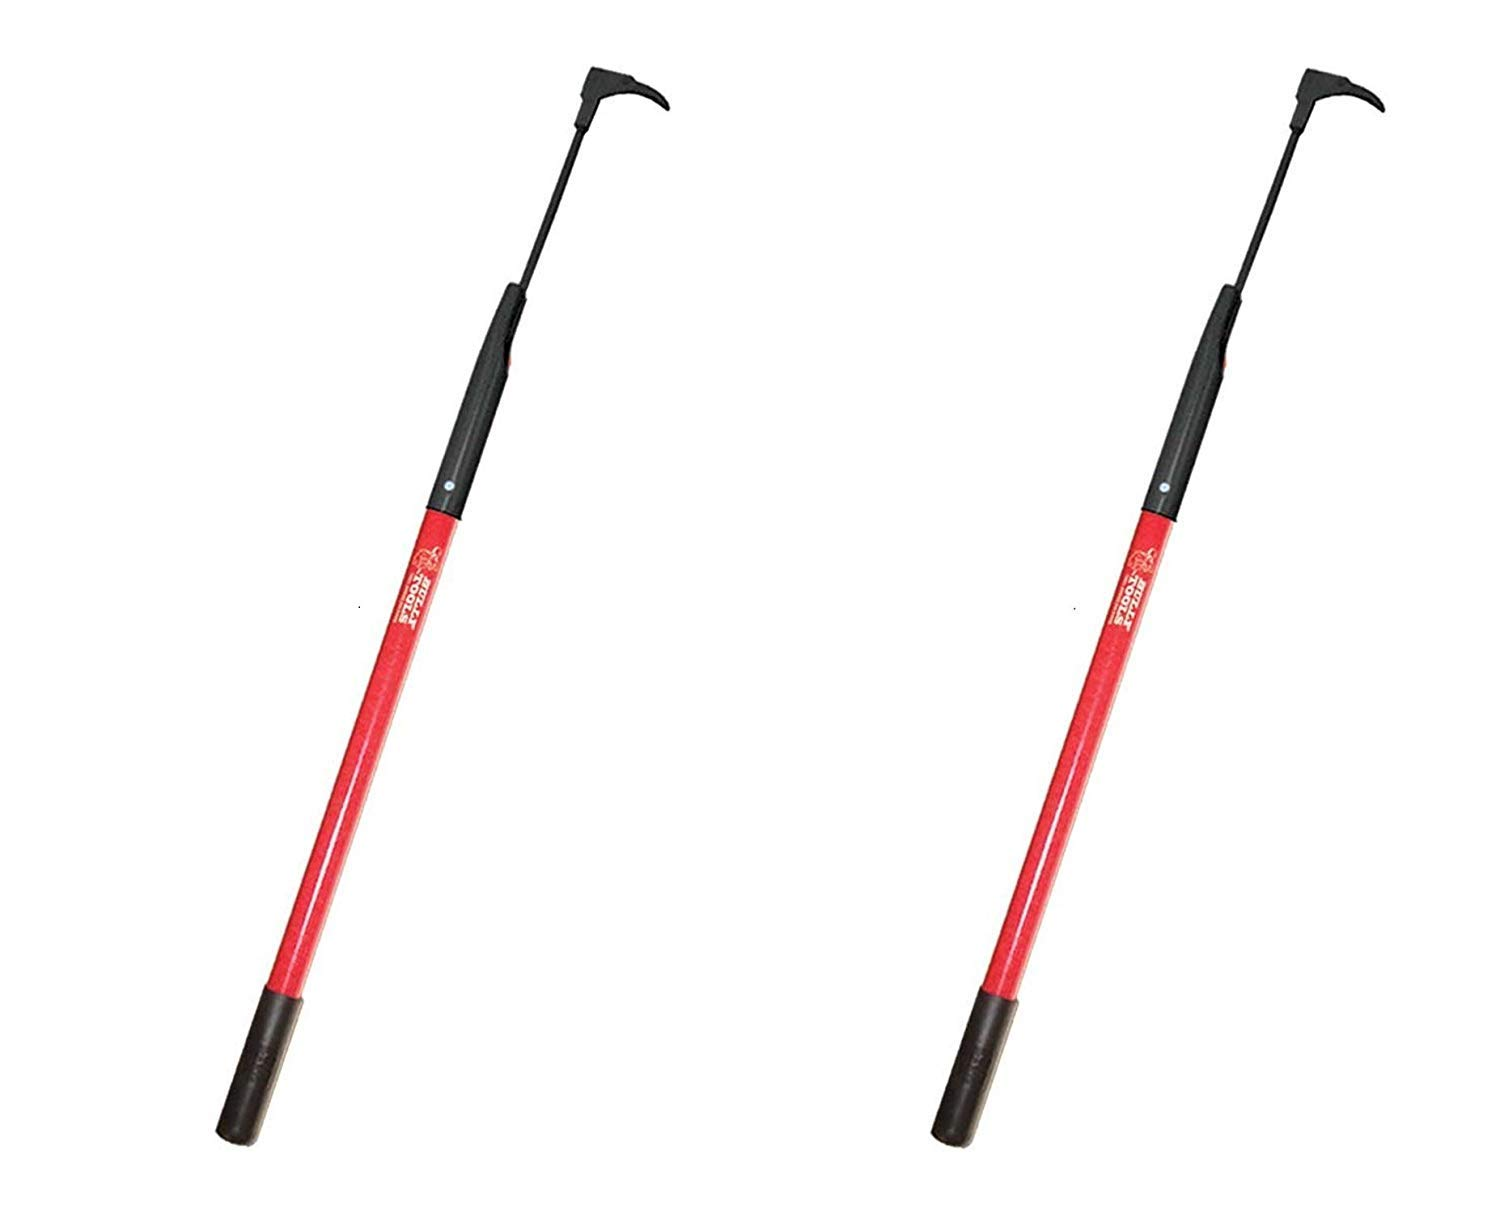 Bully Tools 92395 7-Gauge 3-Inch Bean Hook/Paver Weeder with Dual-Sided Blade (Pack of 2)